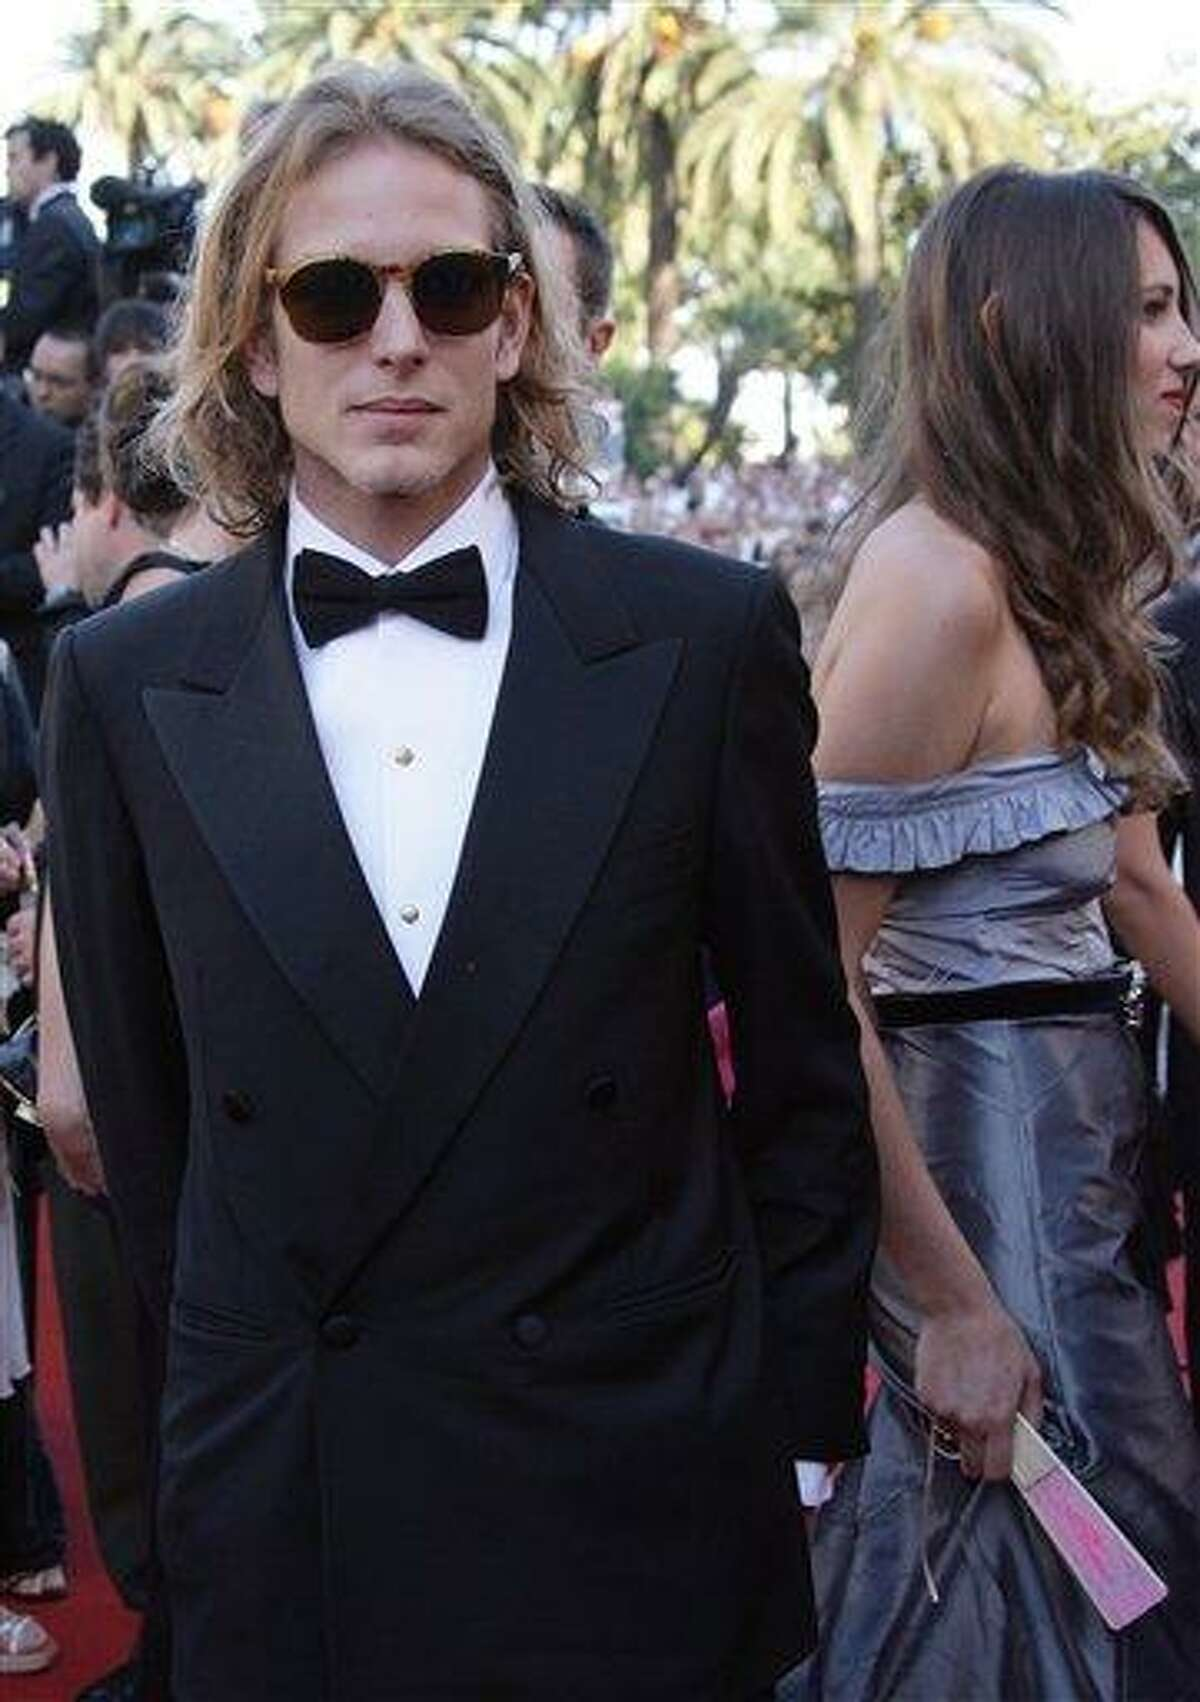 """In this file photo, Andrea Casiraghi, left, son of Princess Caroline of Hanover, and Tatiana Santo Domingo arrive for the screening of the film """"Marie-Antoinette,"""" at the 59th International film festival in Cannes, southern France. The Monaco palace announced Wednesday the engagement of Casiraghi to Santo Domingo. Associated Press"""